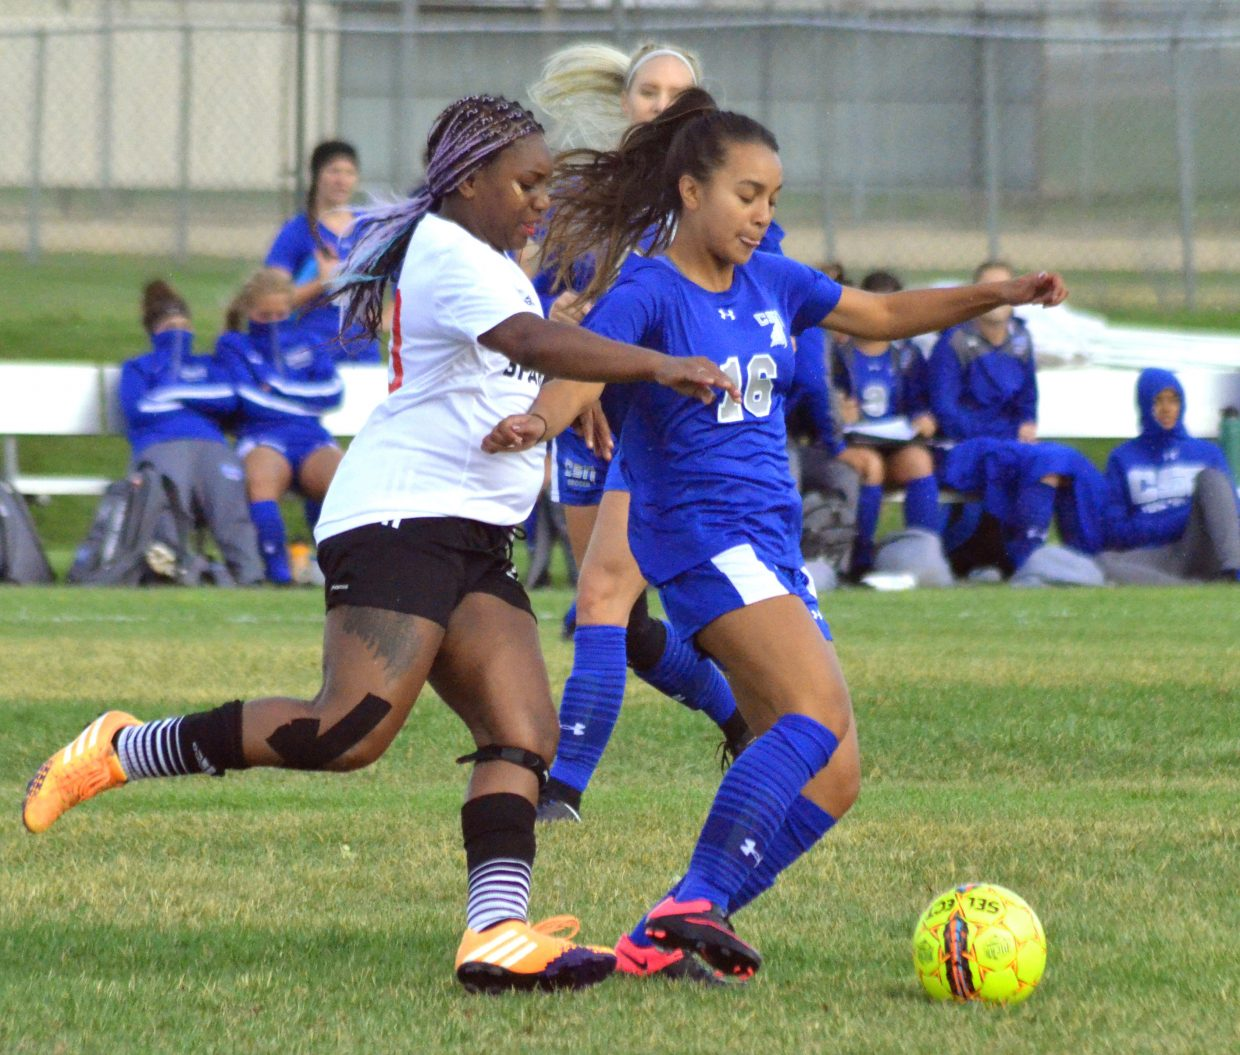 Colorado Northwestern Community College women's soccer player Janae Warrior keeps on top of her College of Southern Nevada opposition. CNCC women have dealt with a small roster and multiple injuries this season.